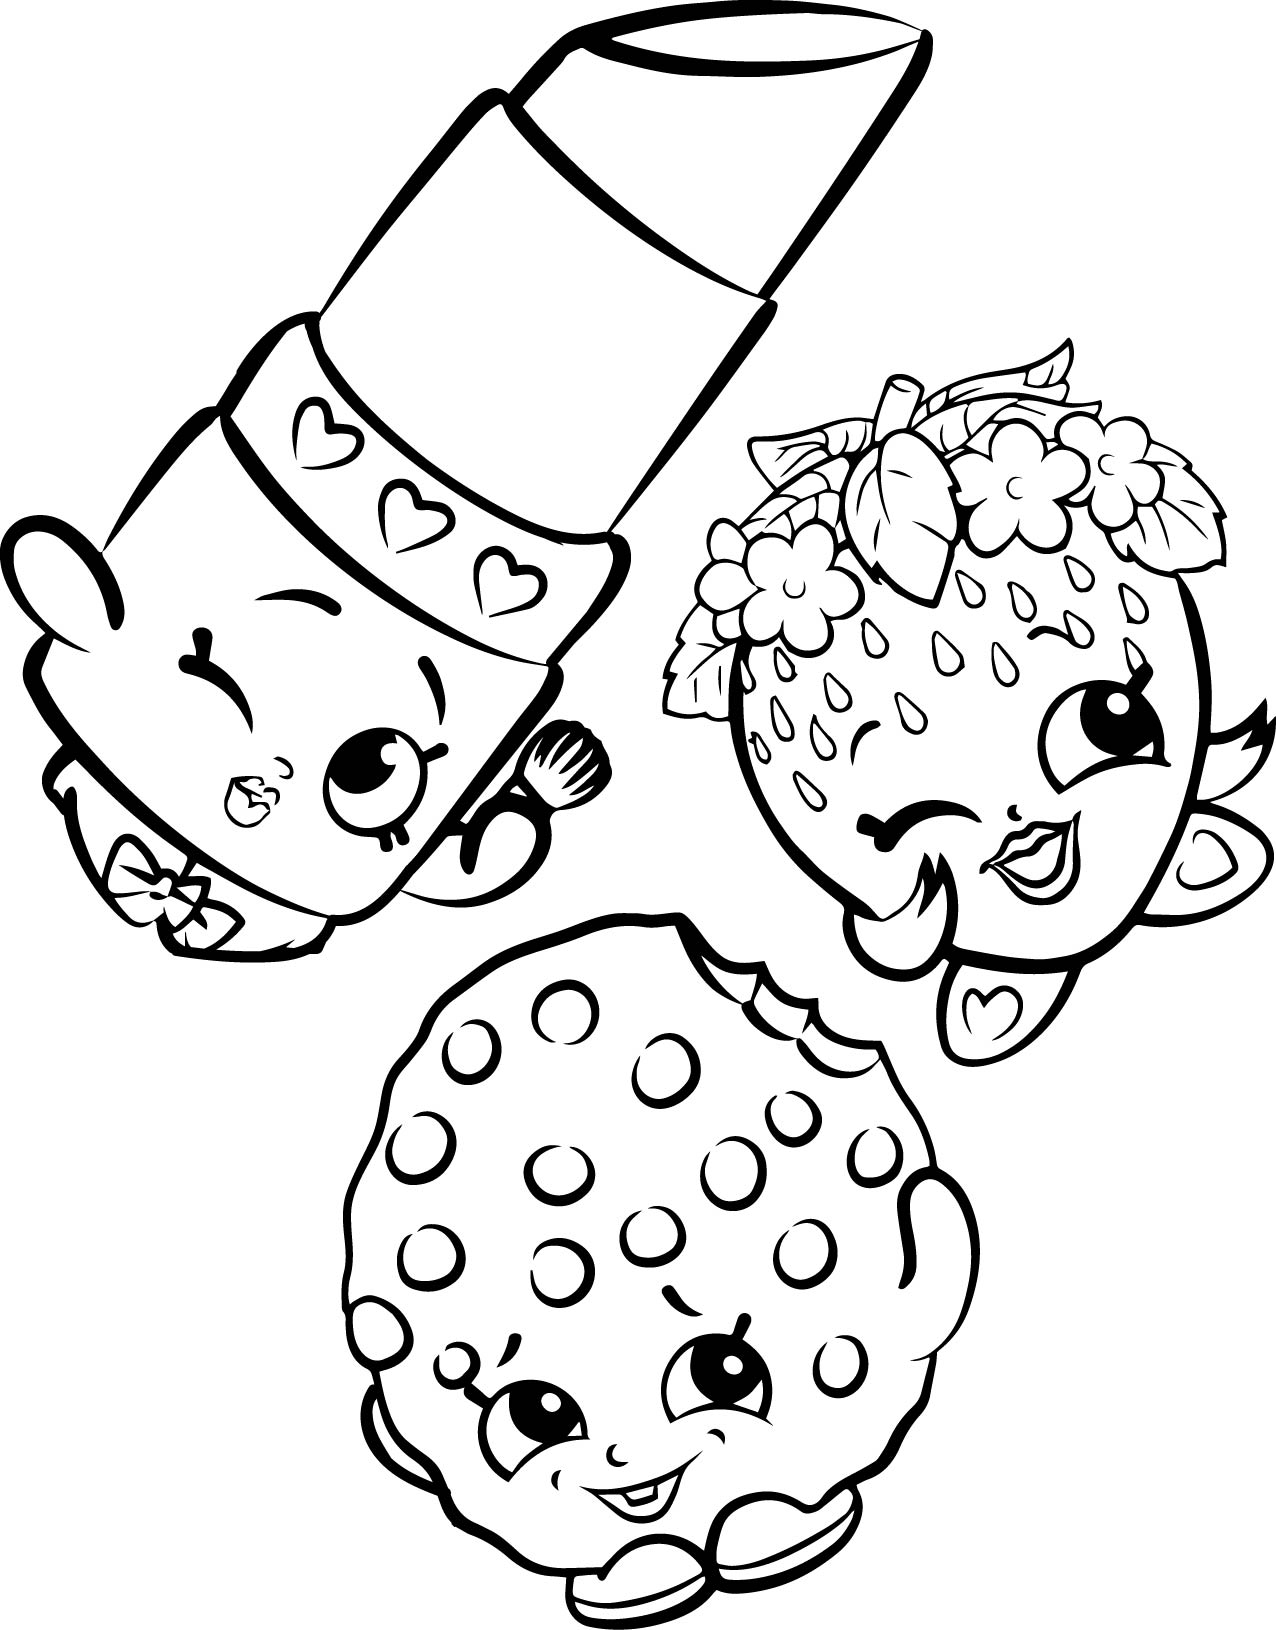 coloring worksheets shopkins shopkins coloring pages best coloring pages for kids shopkins coloring worksheets 1 1